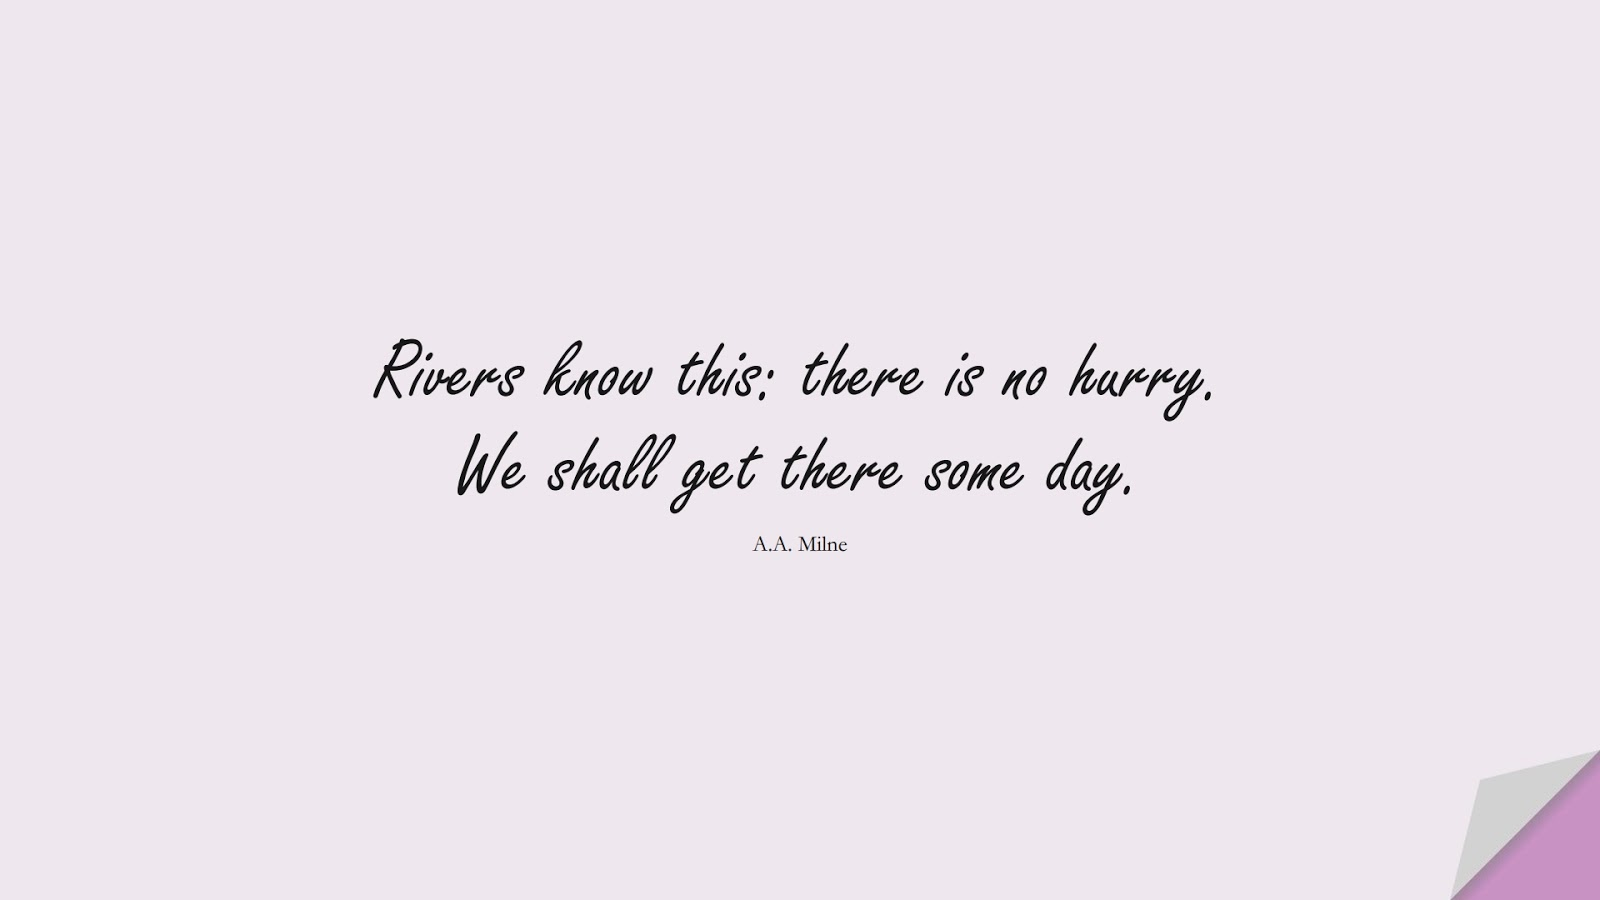 Rivers know this: there is no hurry. We shall get there some day. (A.A. Milne);  #PerseveranceQuotes